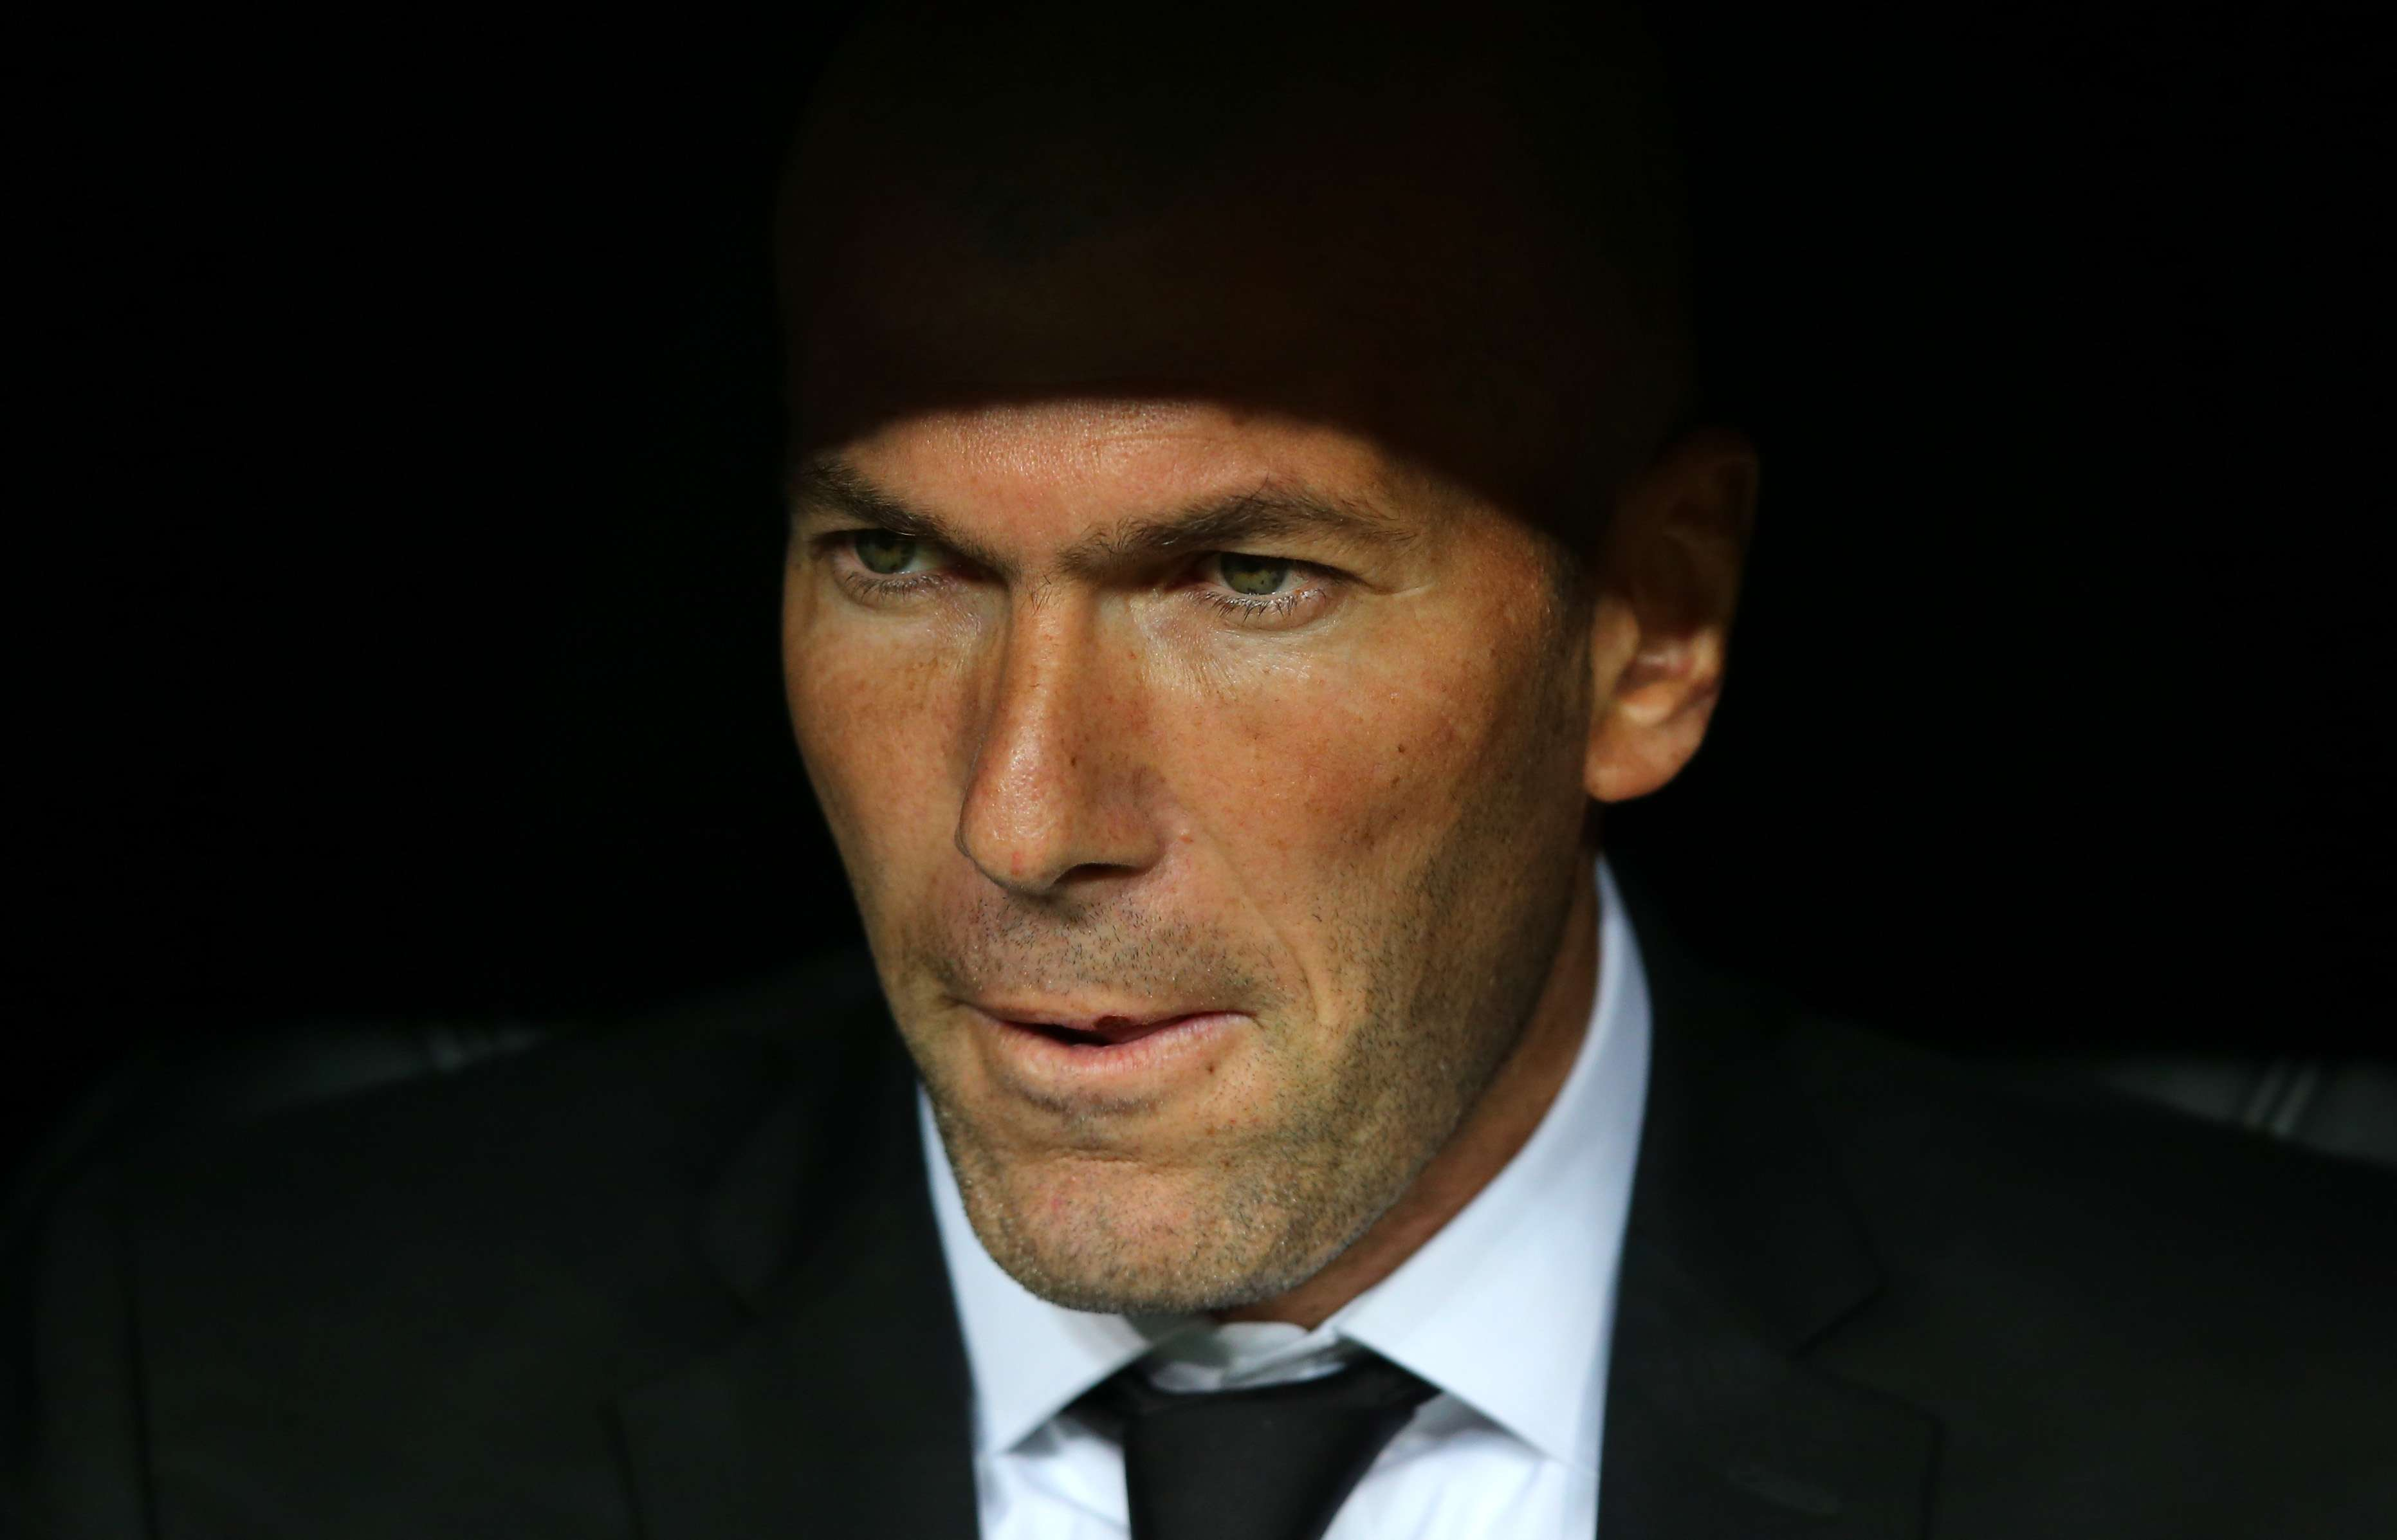 Zinedine Zidane wanted to coach France after Euro 2012